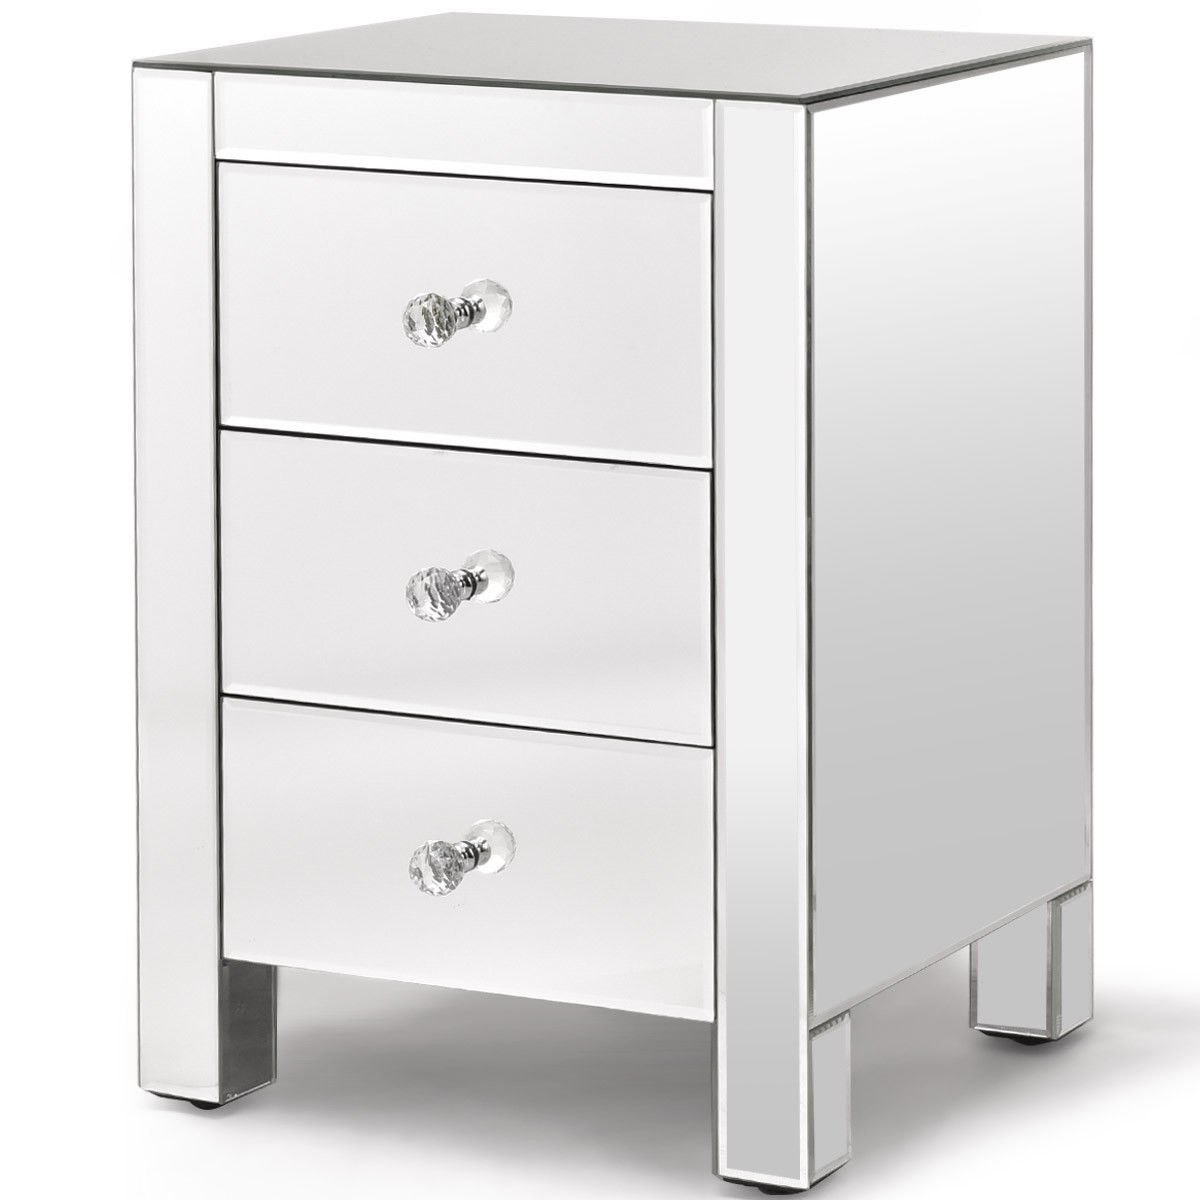 way mirrored nightstand drawer modern mirror end accent table with storage cabinet metal folding side pier outdoor furniture drop leaf sheesham wood console porch tables